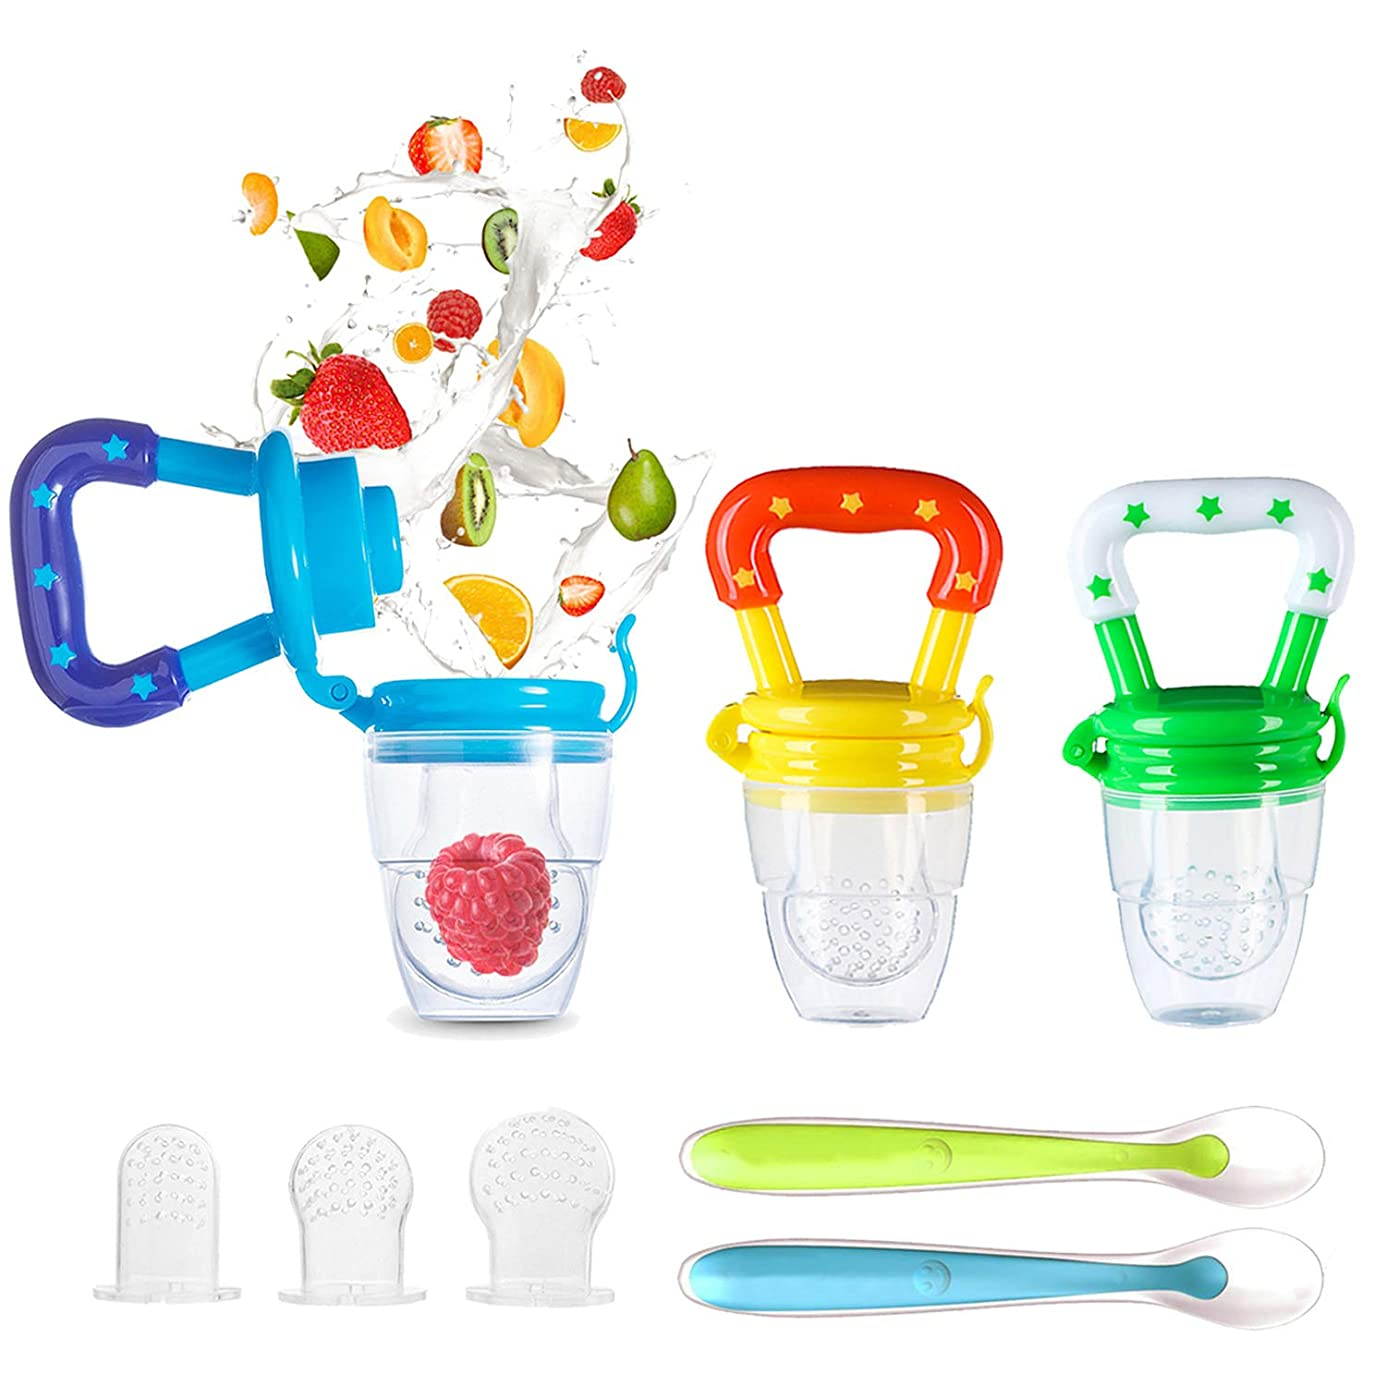 Baby Food Feeder, YCGRE Reusable Fresh Fruit Feeder Pacifier BPA Free Infant Teething Toy with 2 Pack Baby Feeding Spoons for Toddler & Kids Bonus 3 Pcs Replacement Silicone Pouches (Boy)